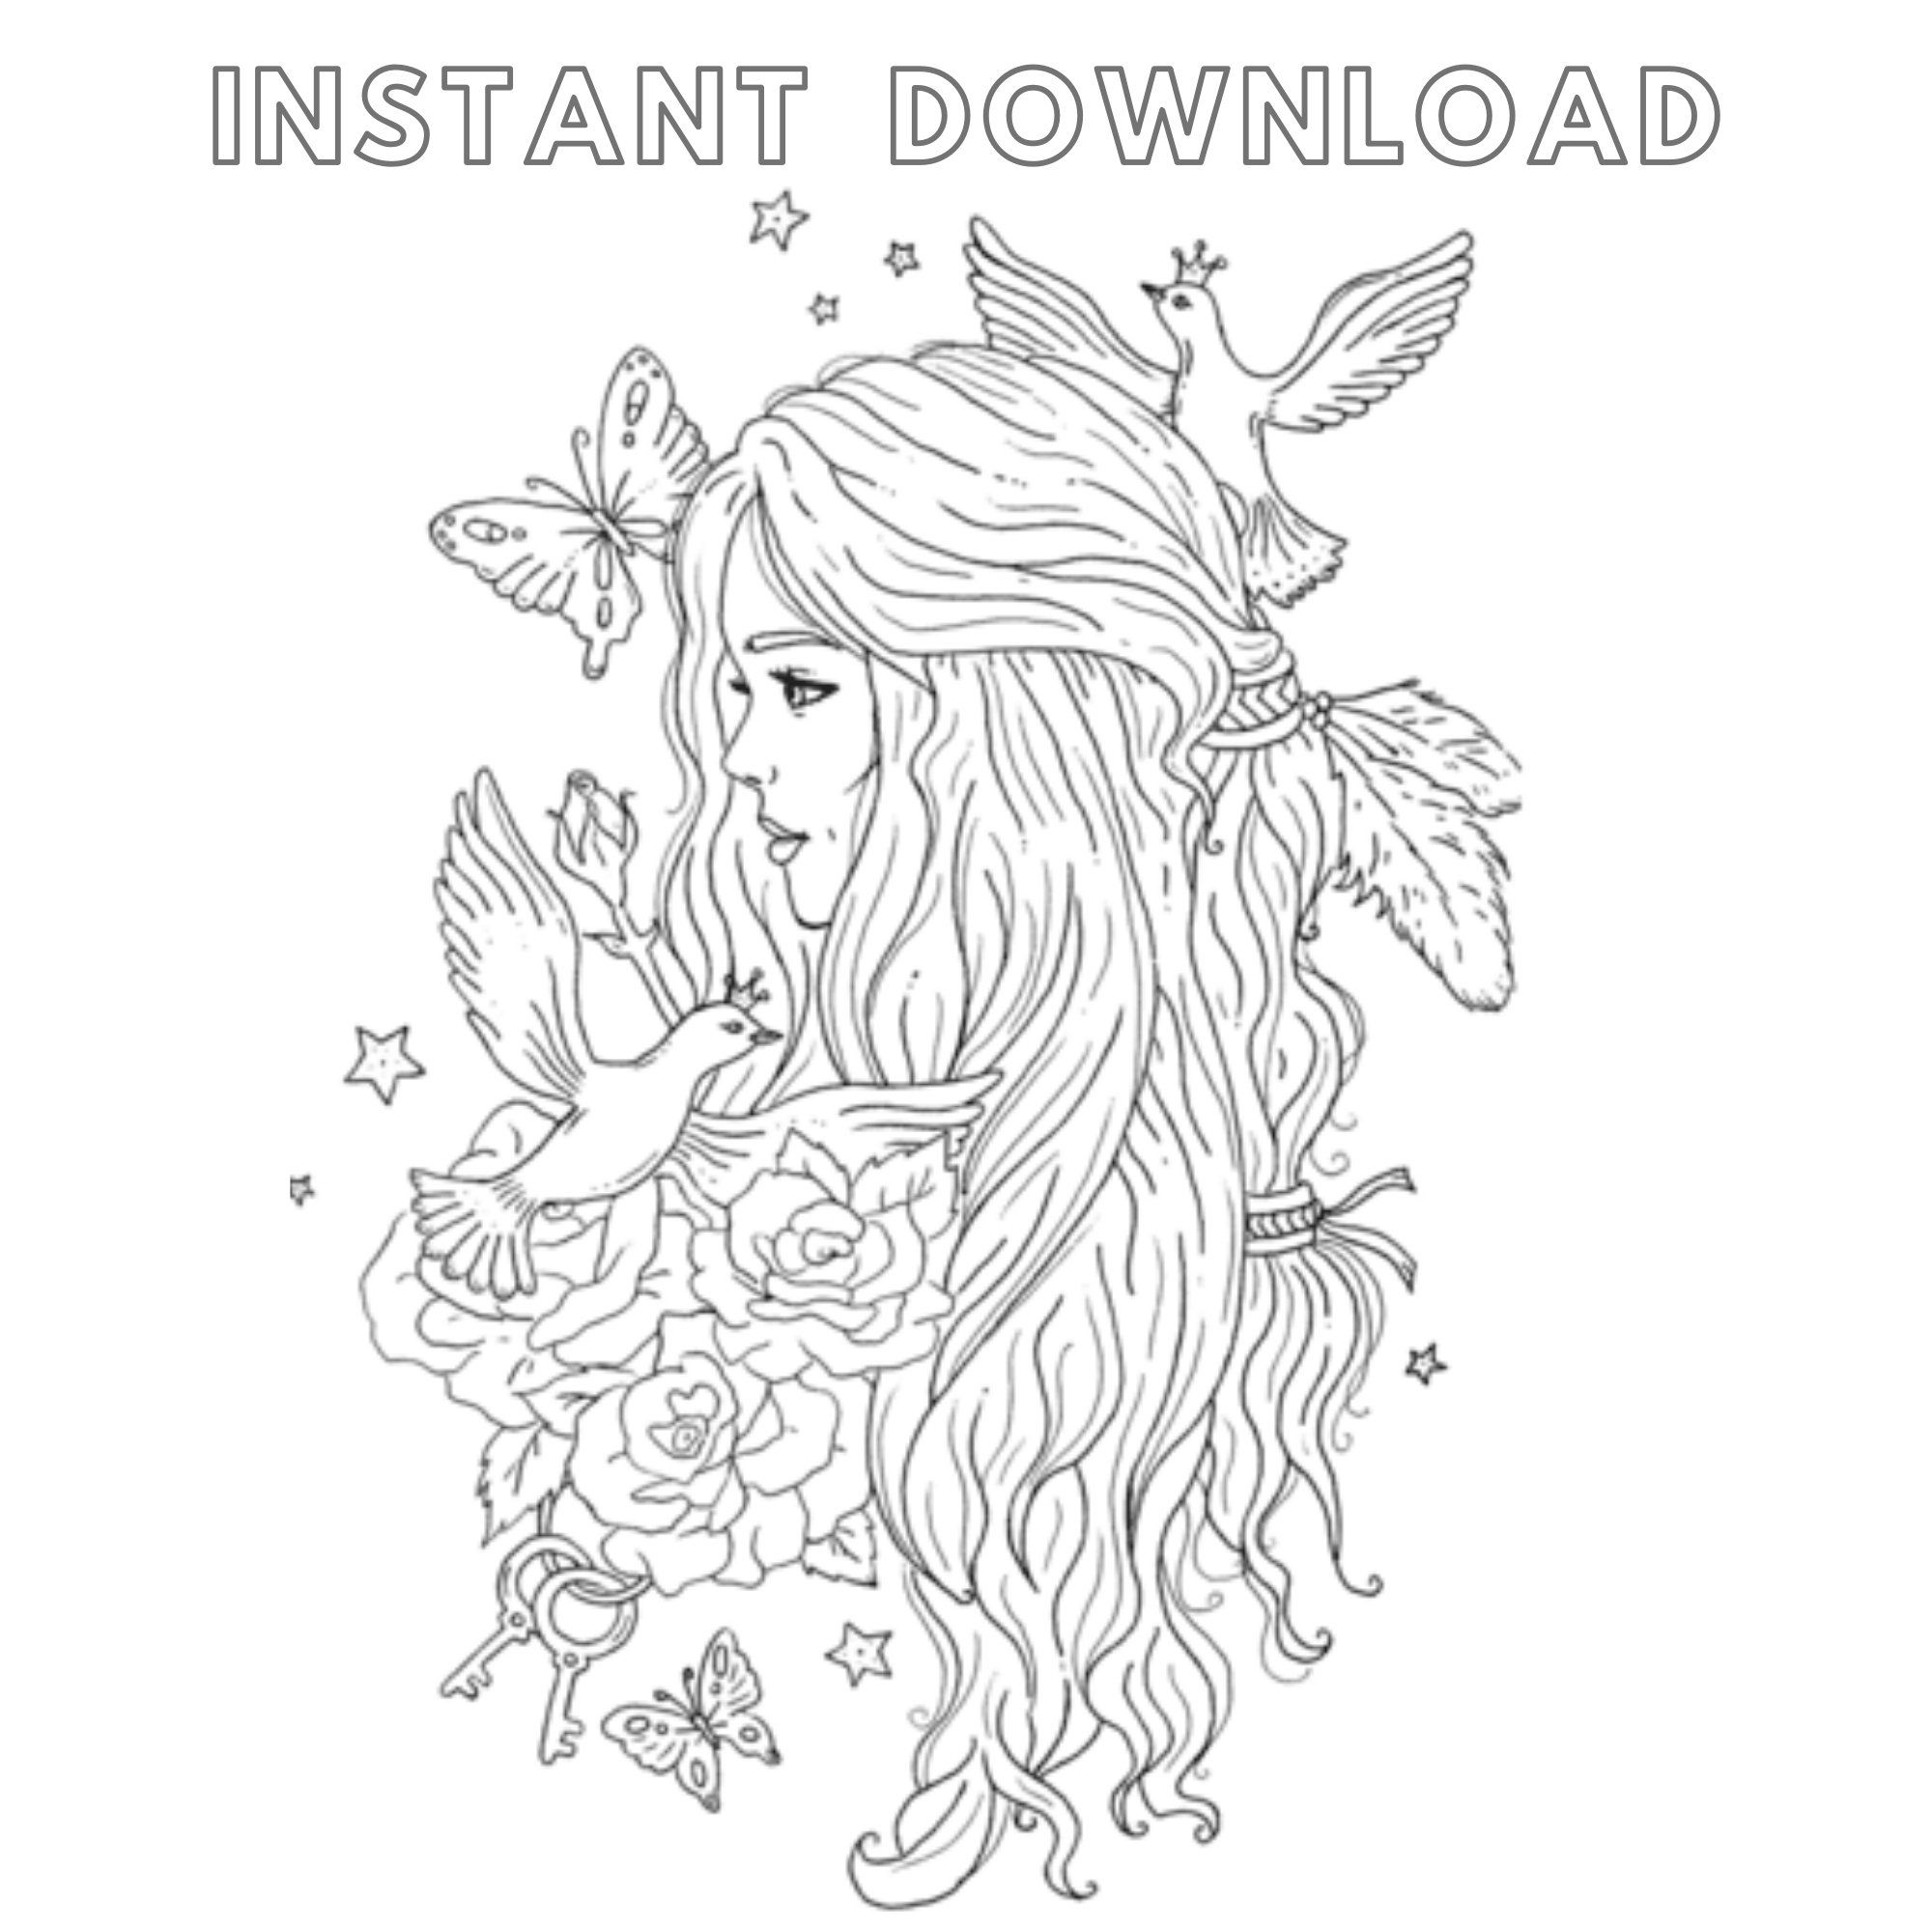 Princess Coloring Pages Coloriage Digital Downloadable By Tshirtsup On Etsy Princess Coloring Pages Princess Coloring Coloring Pages